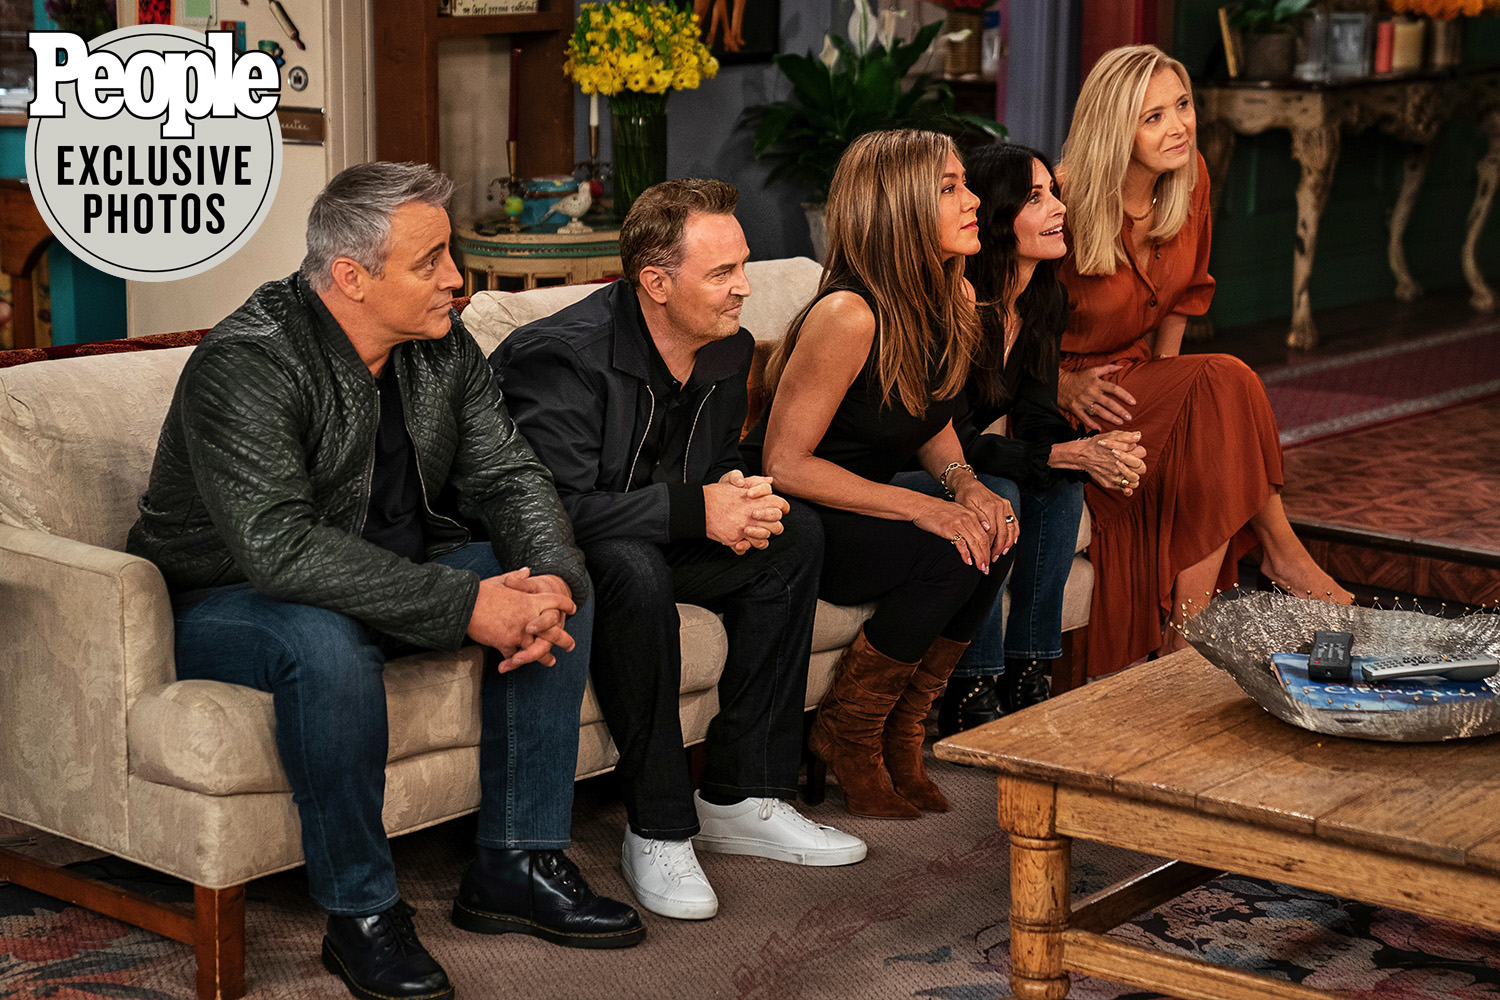 friends cast sitting together for the friends reunion exclusive pics released